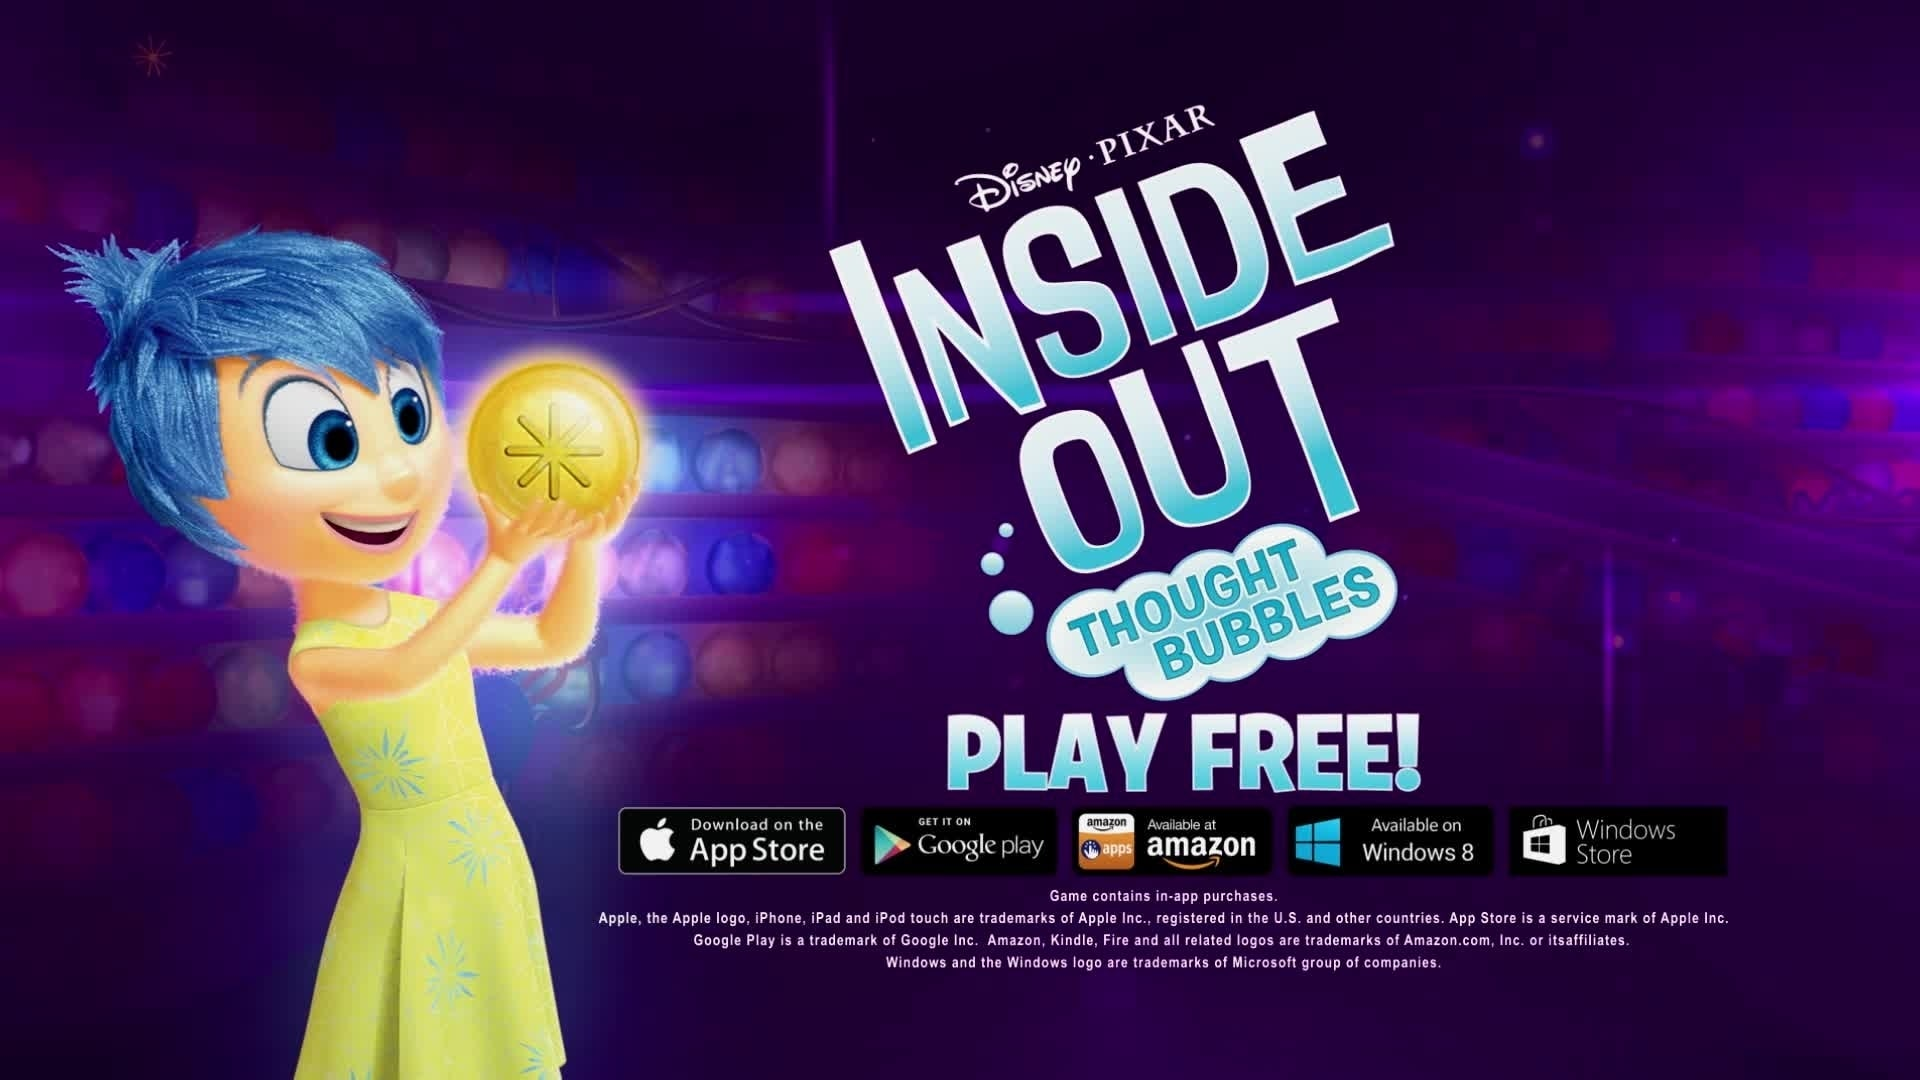 Inside Out: Thought Bubbles Trailer